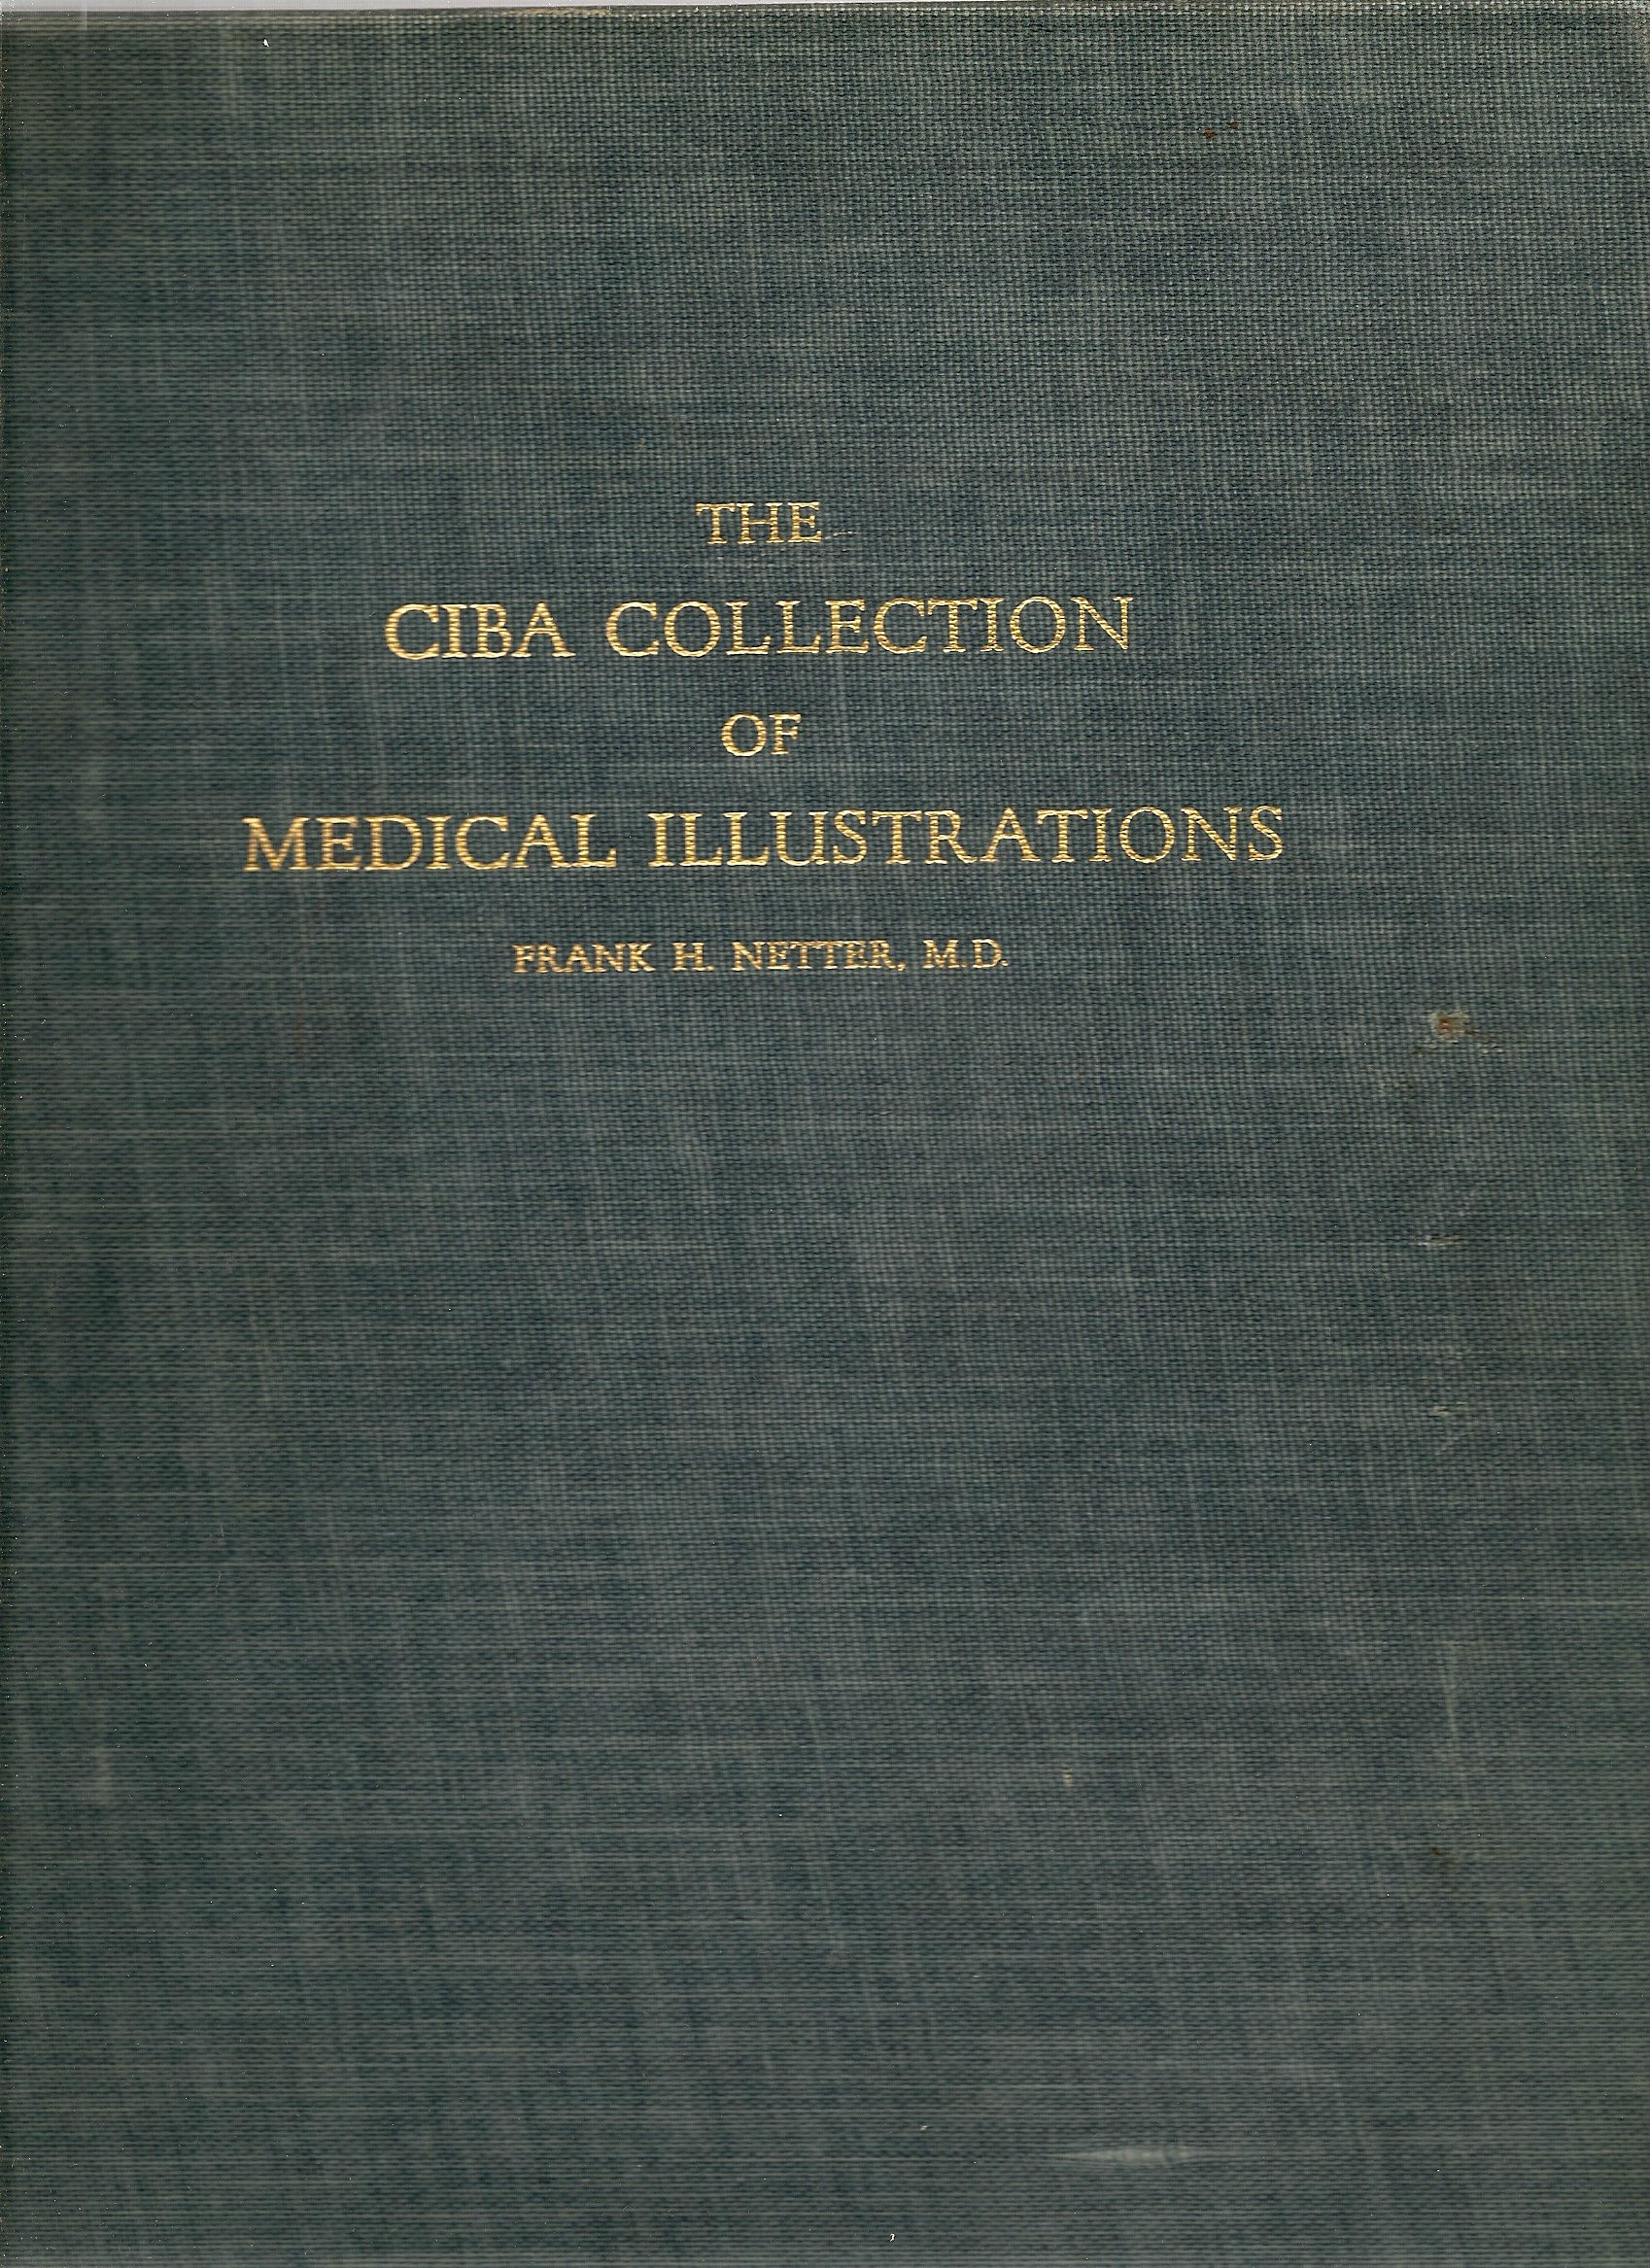 The Ciba Collection of Medical Illustrations (First Ed., 1948)